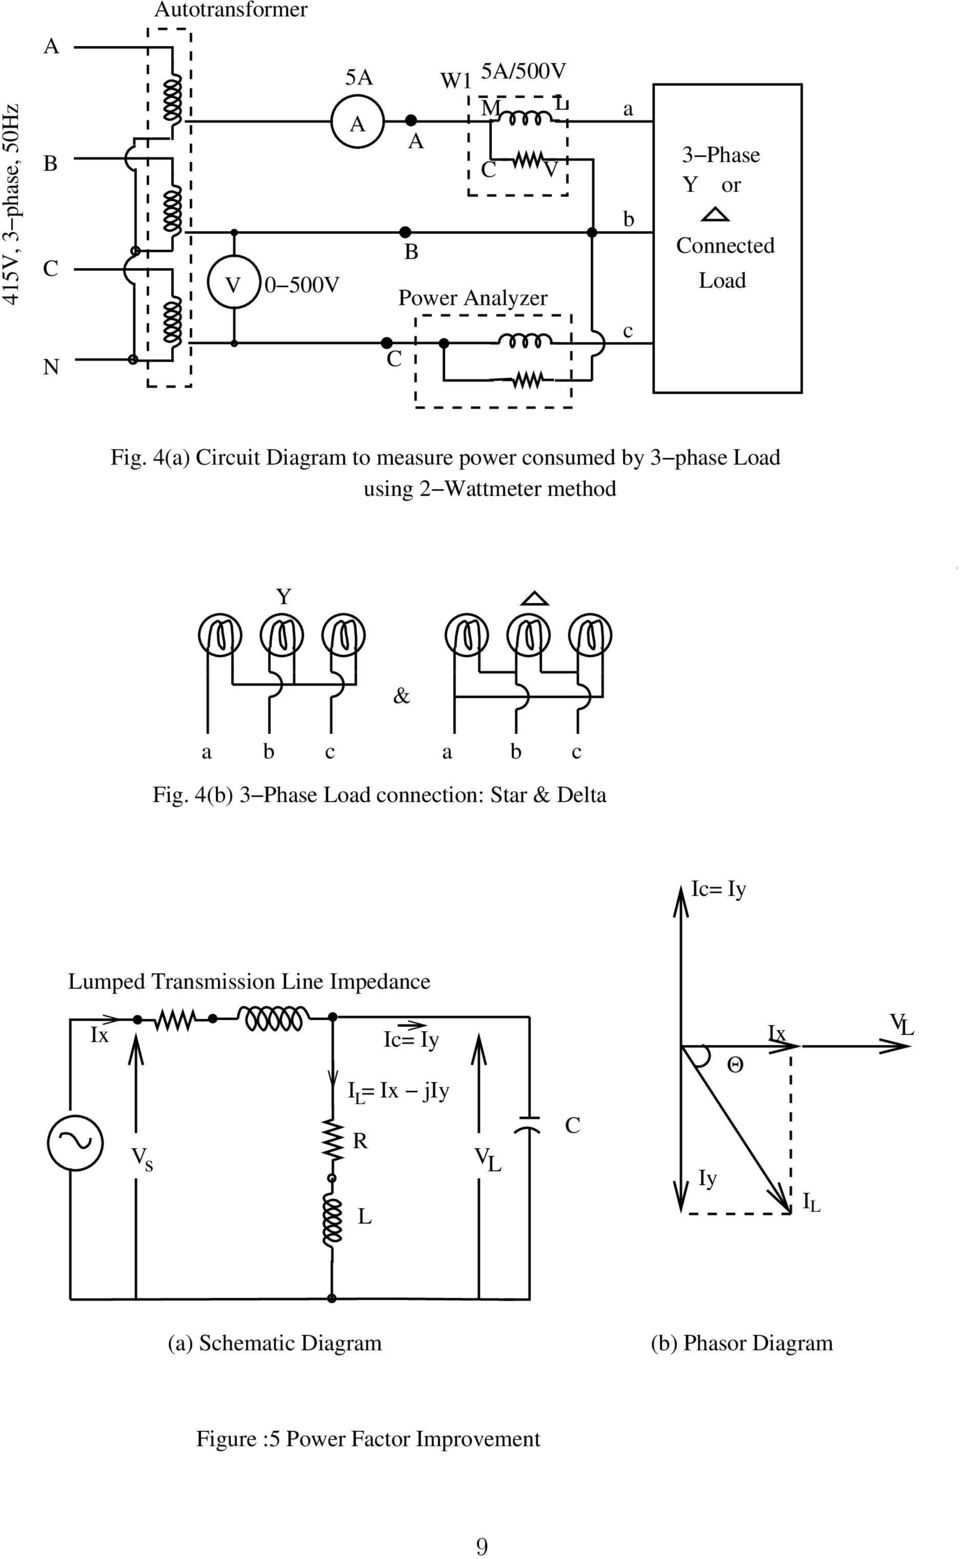 Power Measurement In Balanced 3 Phase Circuits And Factor Schematic Diagram Y Delta 4a Circuit To Measure Consumed By Load Using Wattmeter